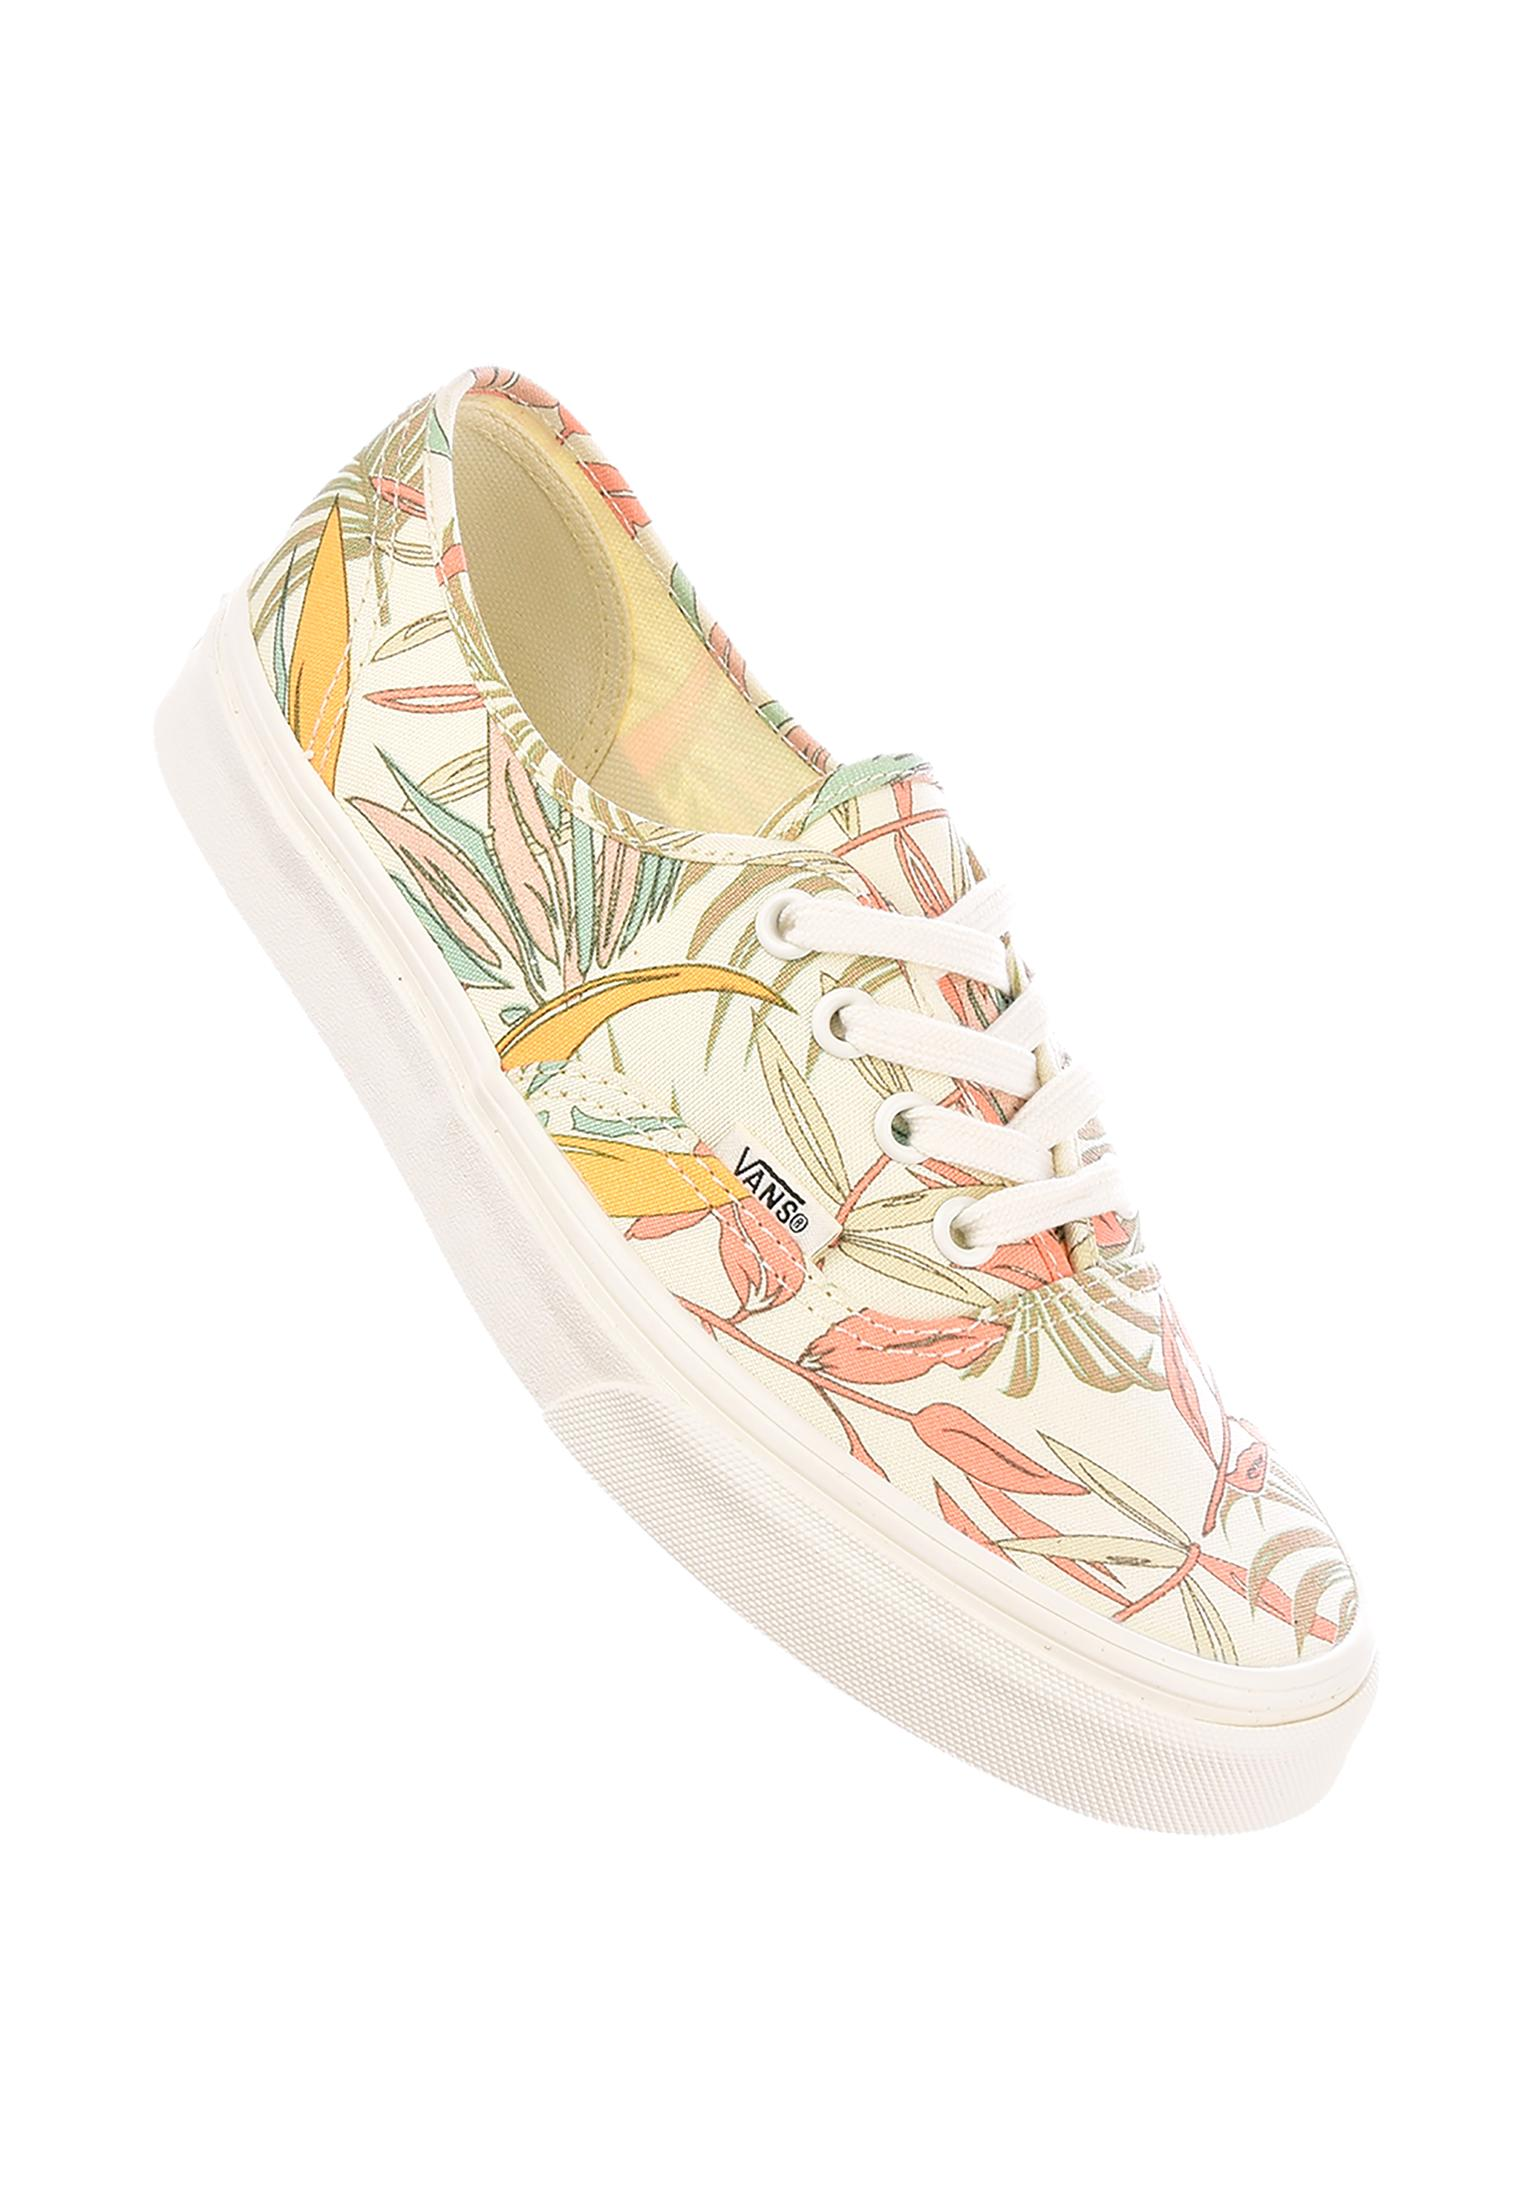 f07f6e044032e2 Authentic Classic Vans All Shoes in  californiafloral-marshmallow-marshmallow for Women